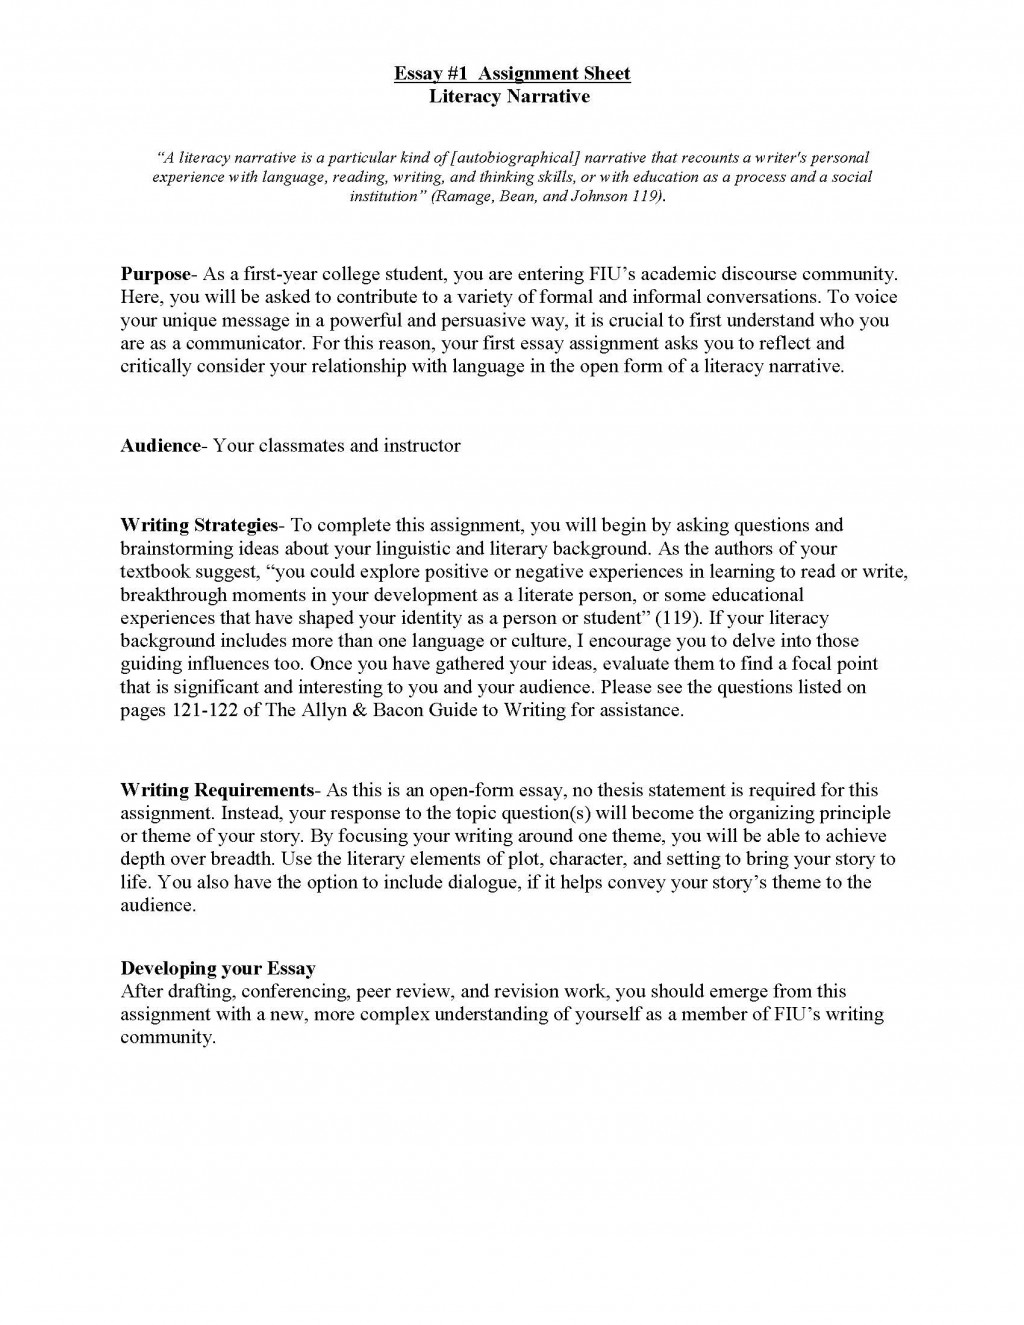 013 Essay Example Literacy Narrative Unitssignment Spring 2012 Page 1 Writing Amazing A About Being Judged Quizlet Powerpoint Large